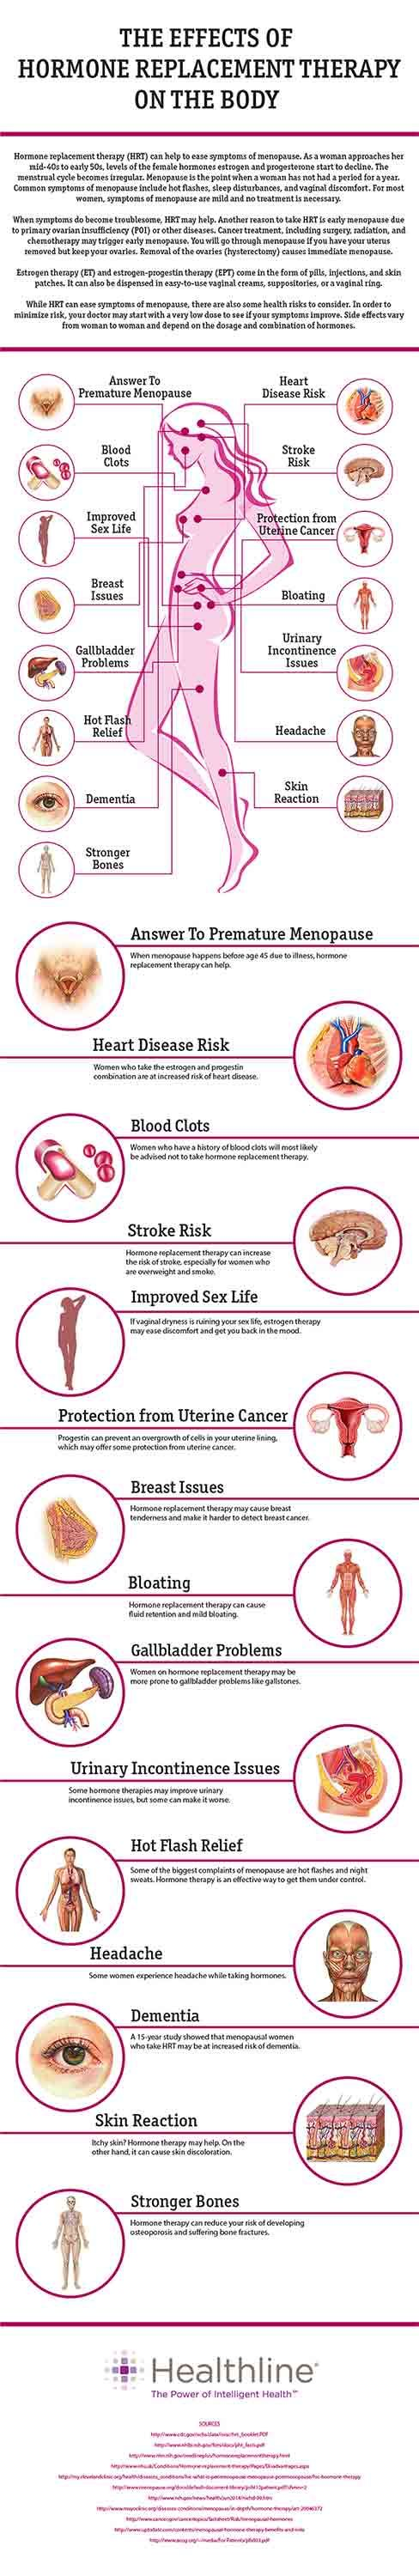 Effects of Menopause on the Body | HL | Lupus facts, Lupus